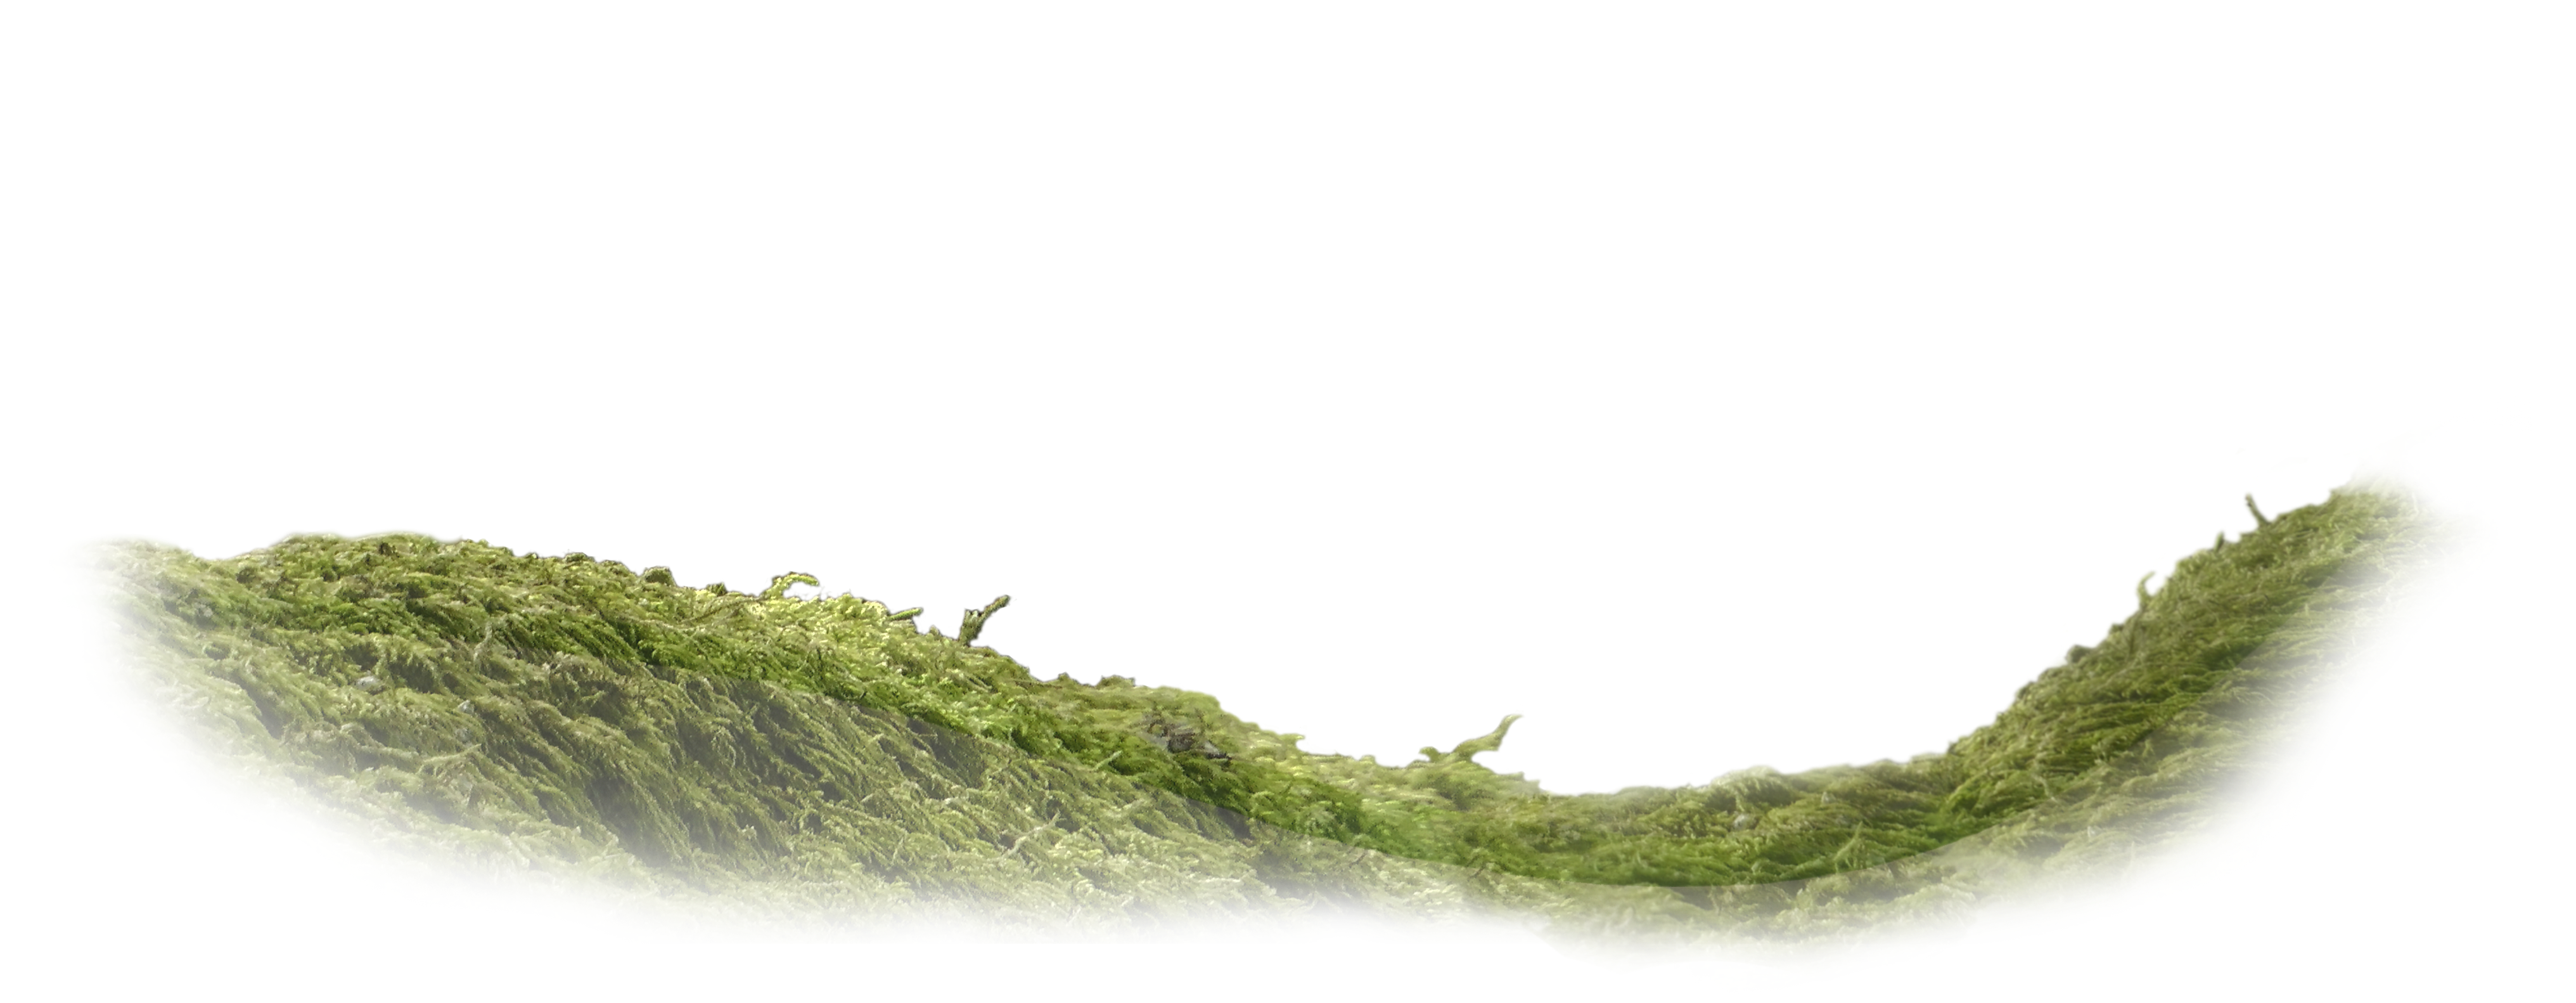 A film from The Top Of The Tree